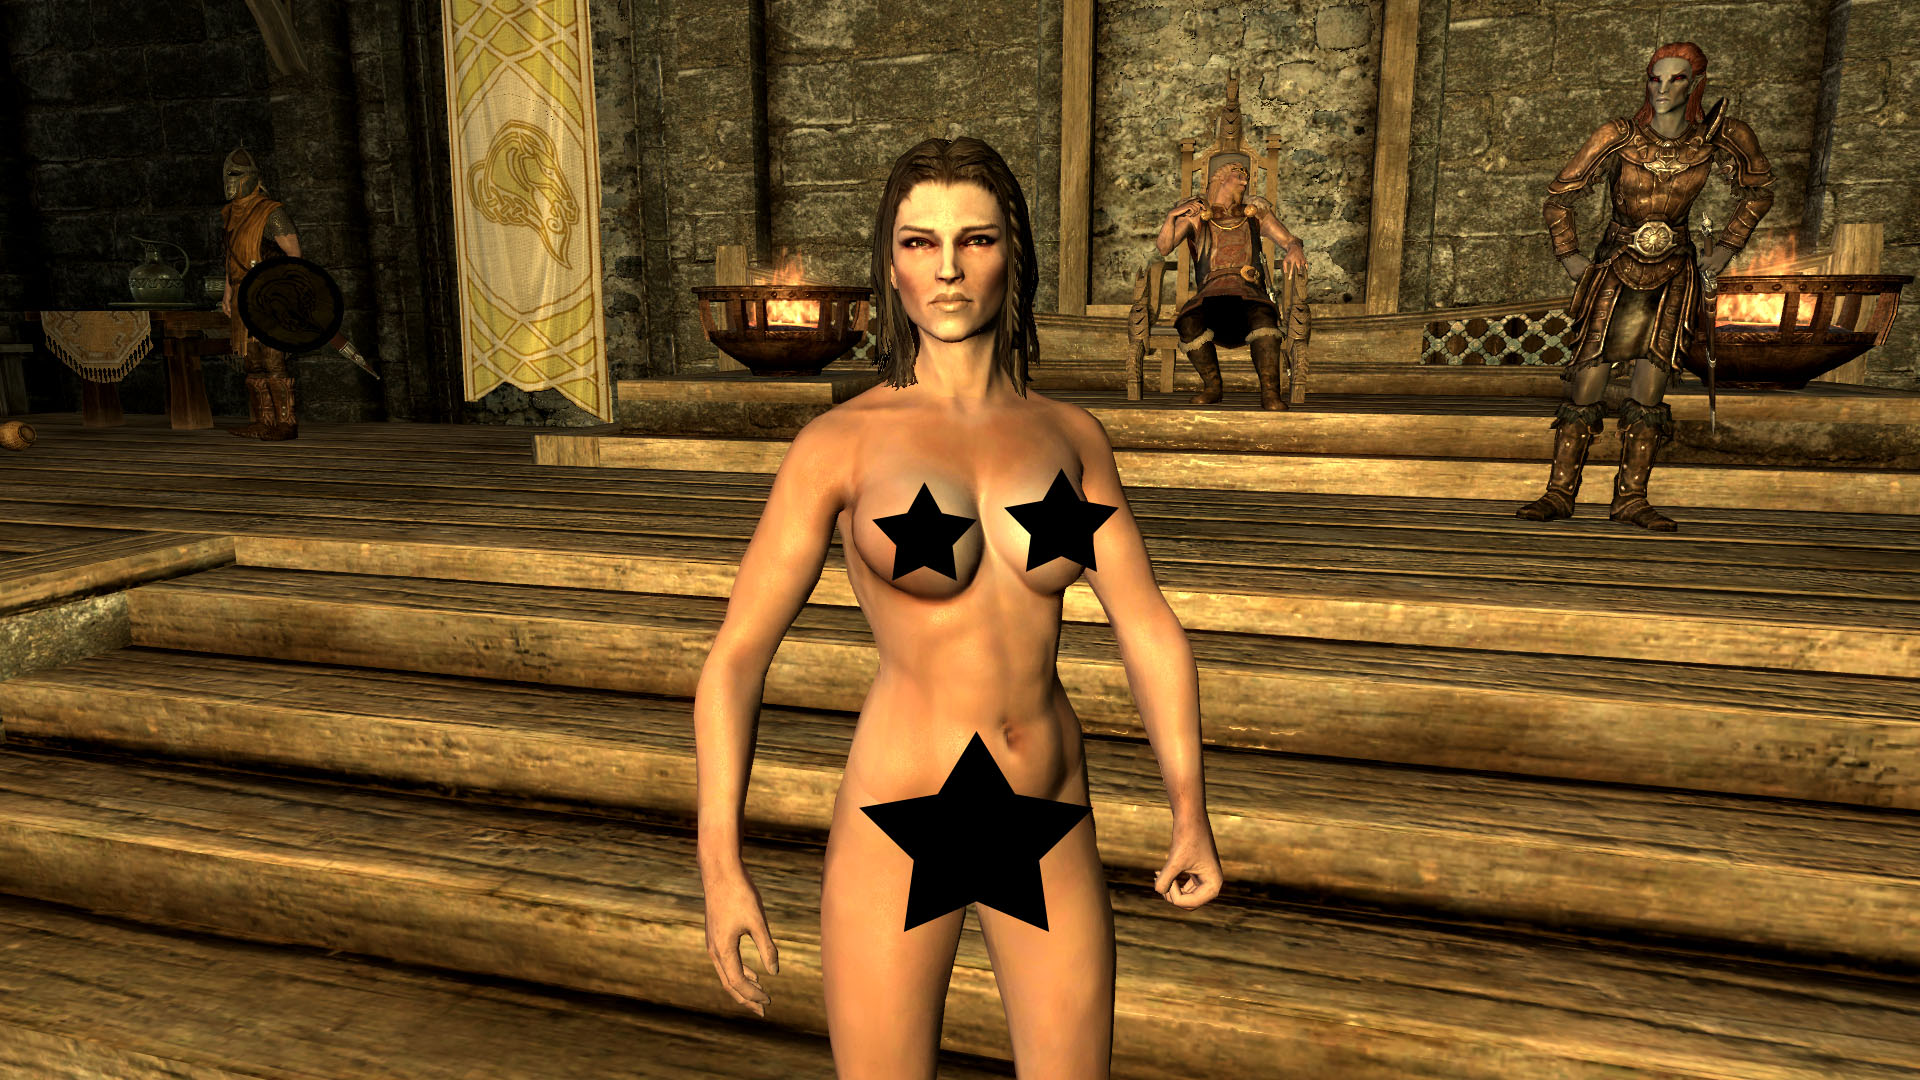 The Elder Scrolls Nude 92